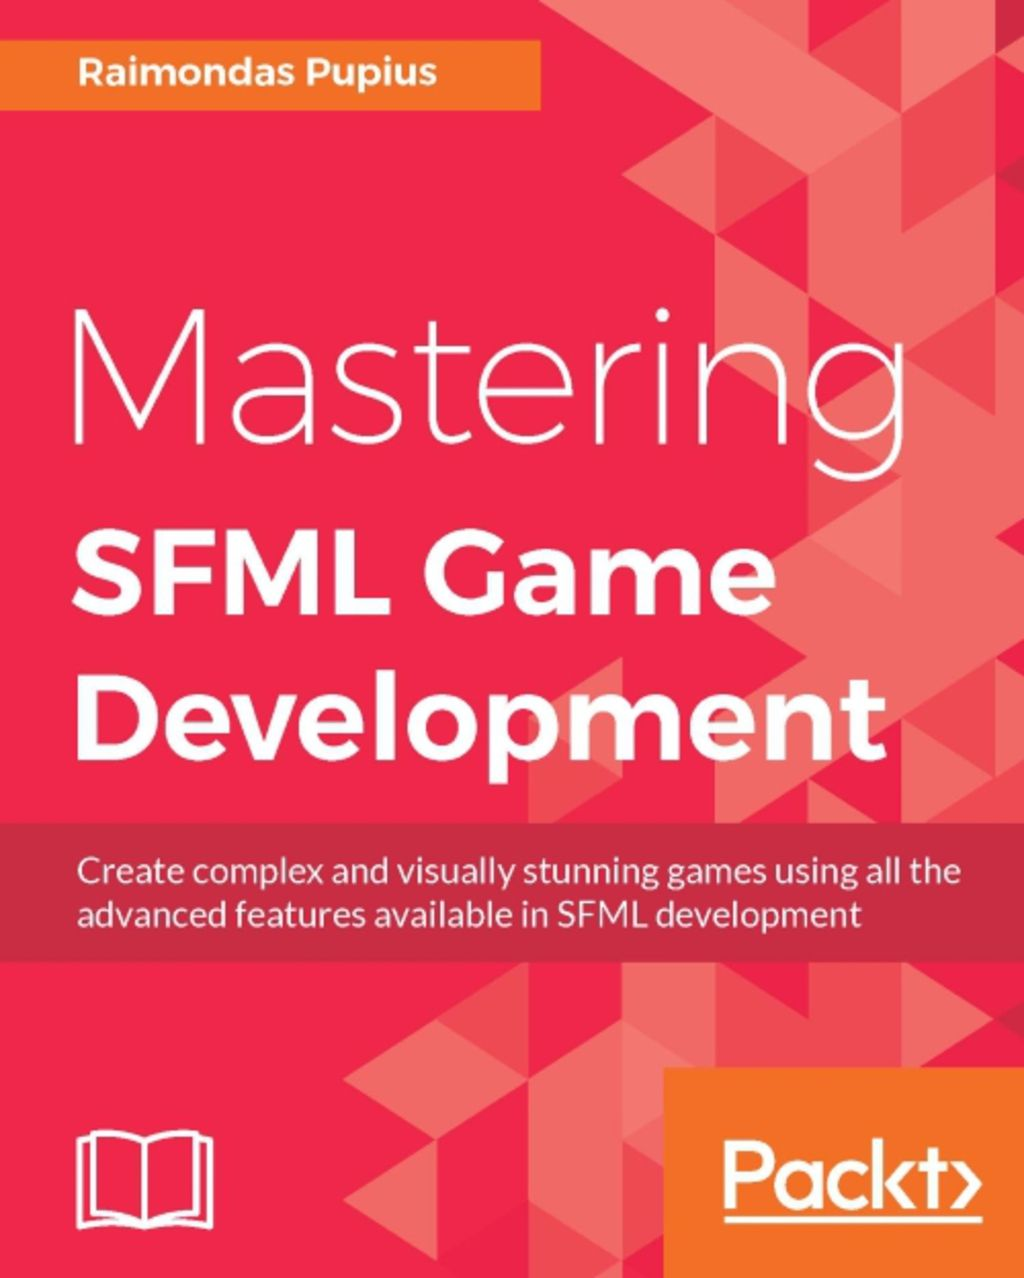 Mastering SFML Game Development (eBook) in 2019 | Products